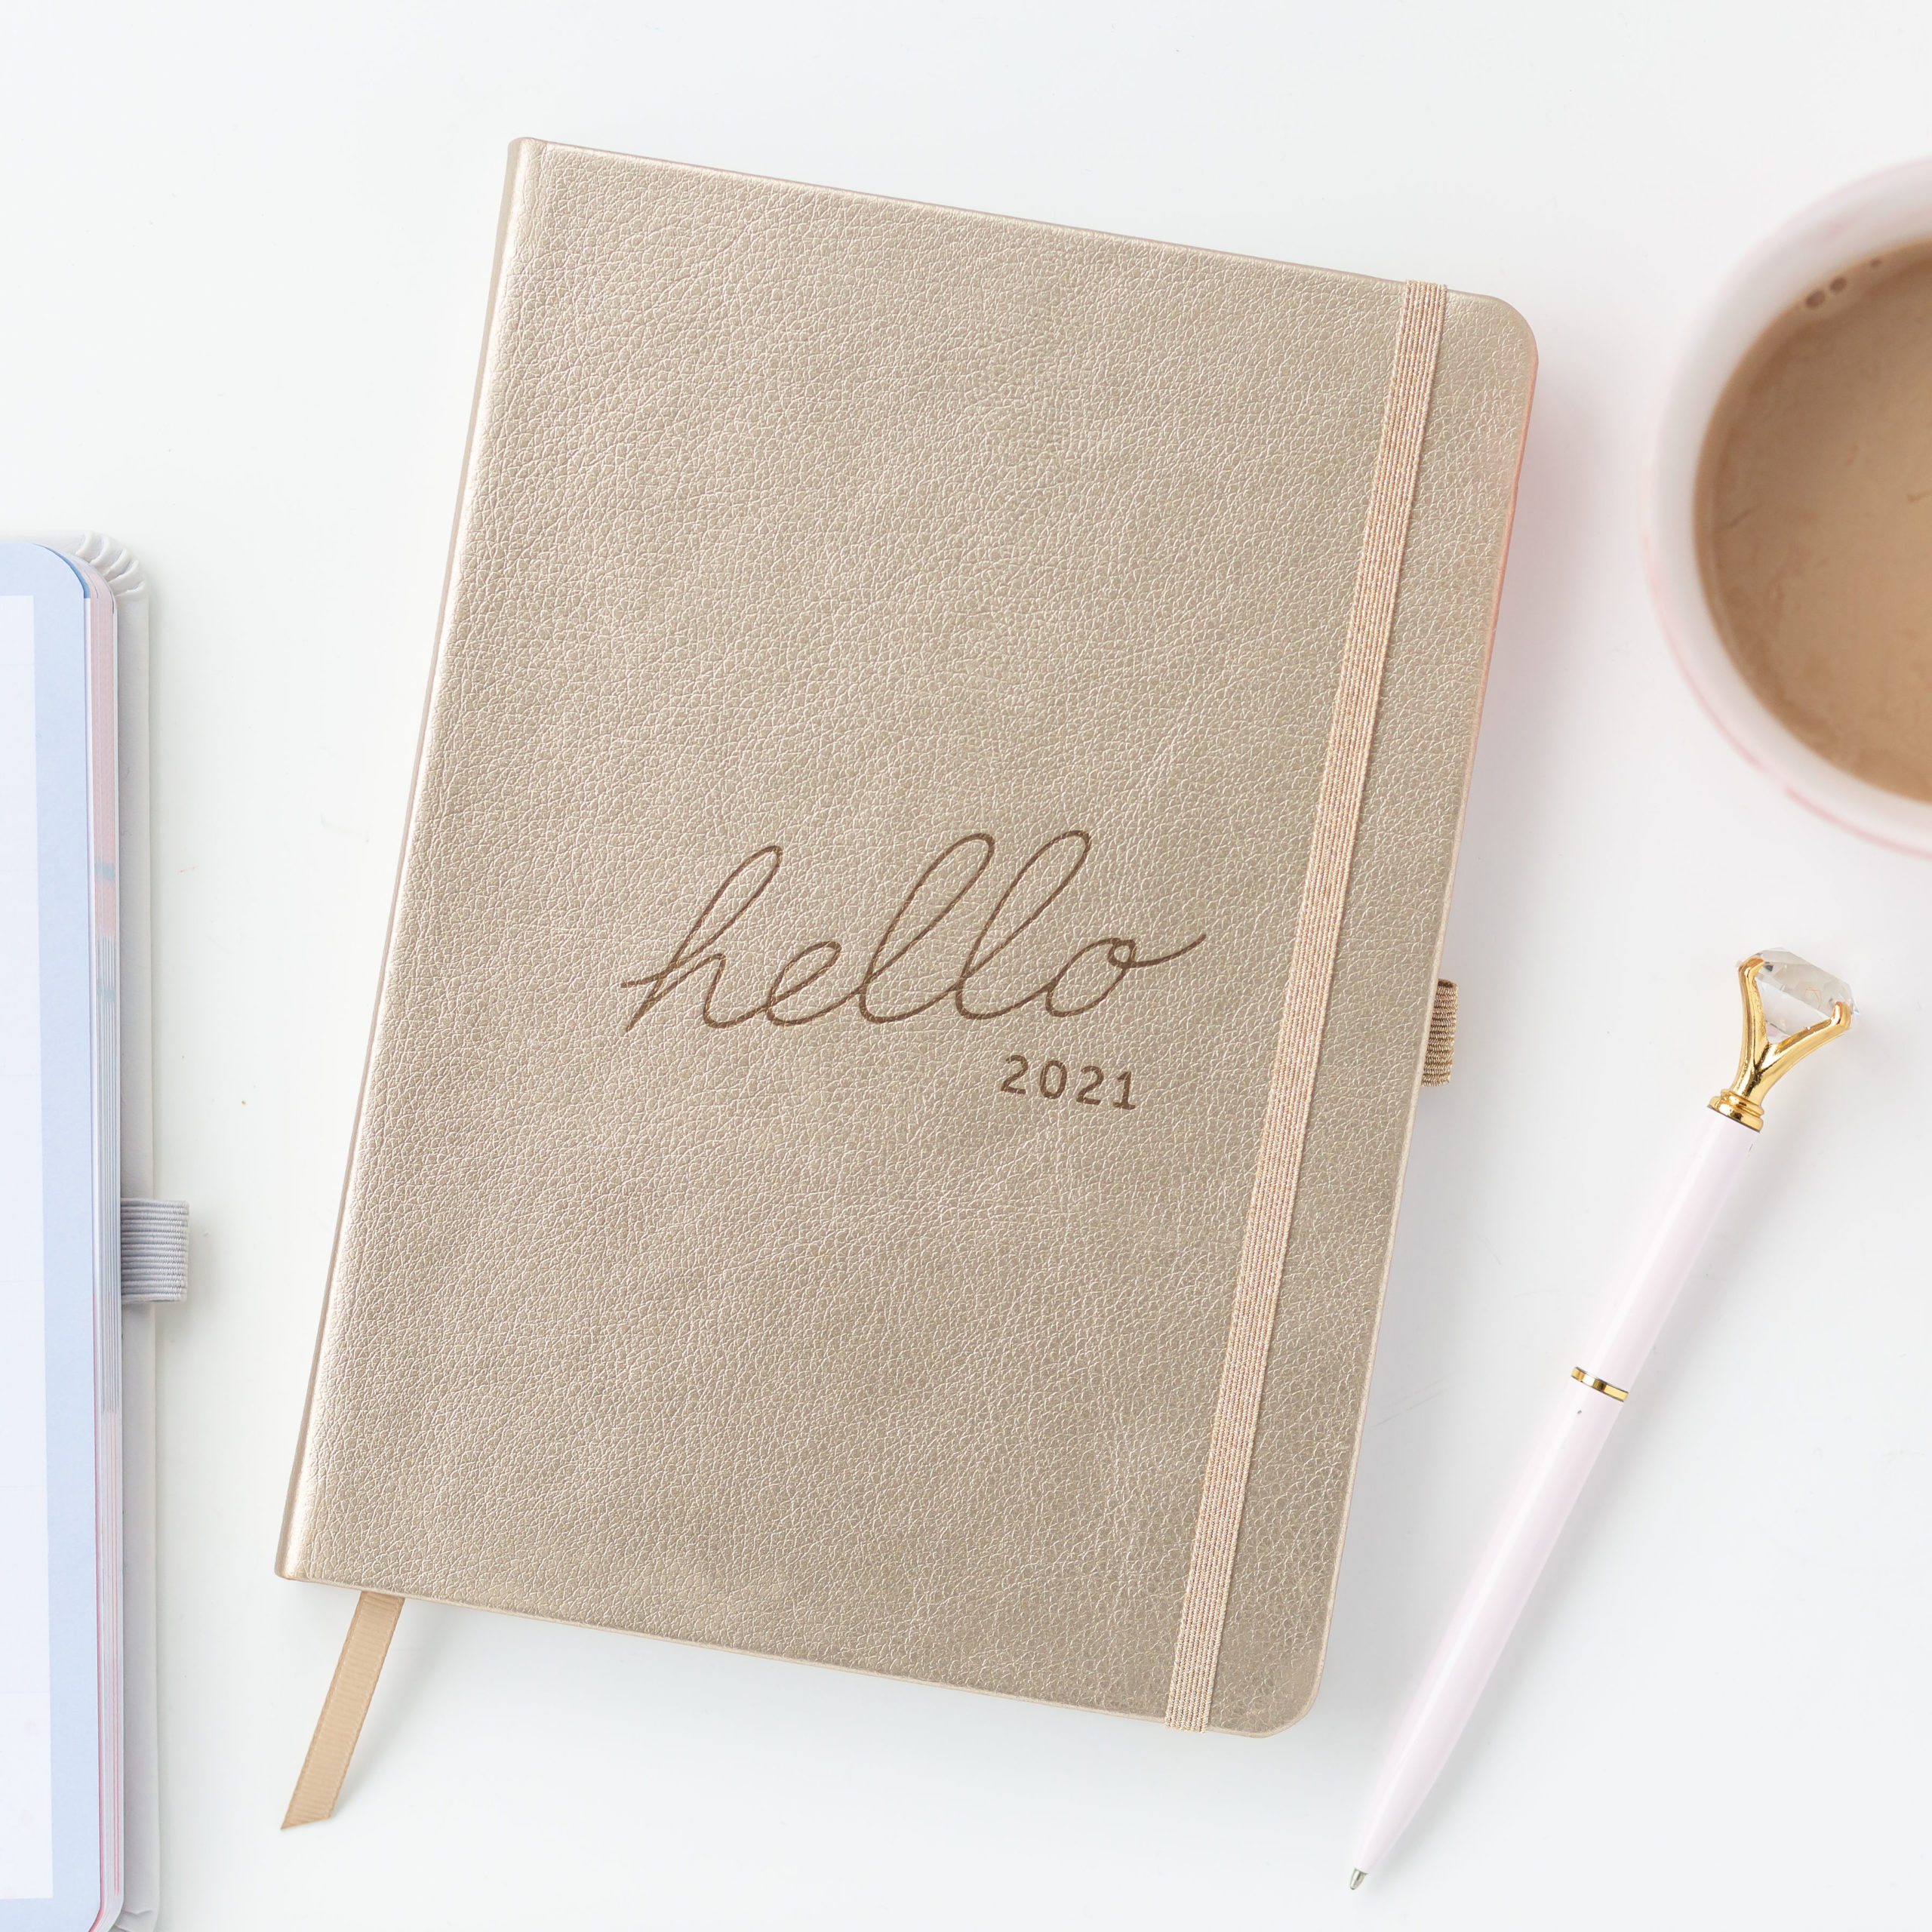 Busy B Family Planner 2021 - Gold